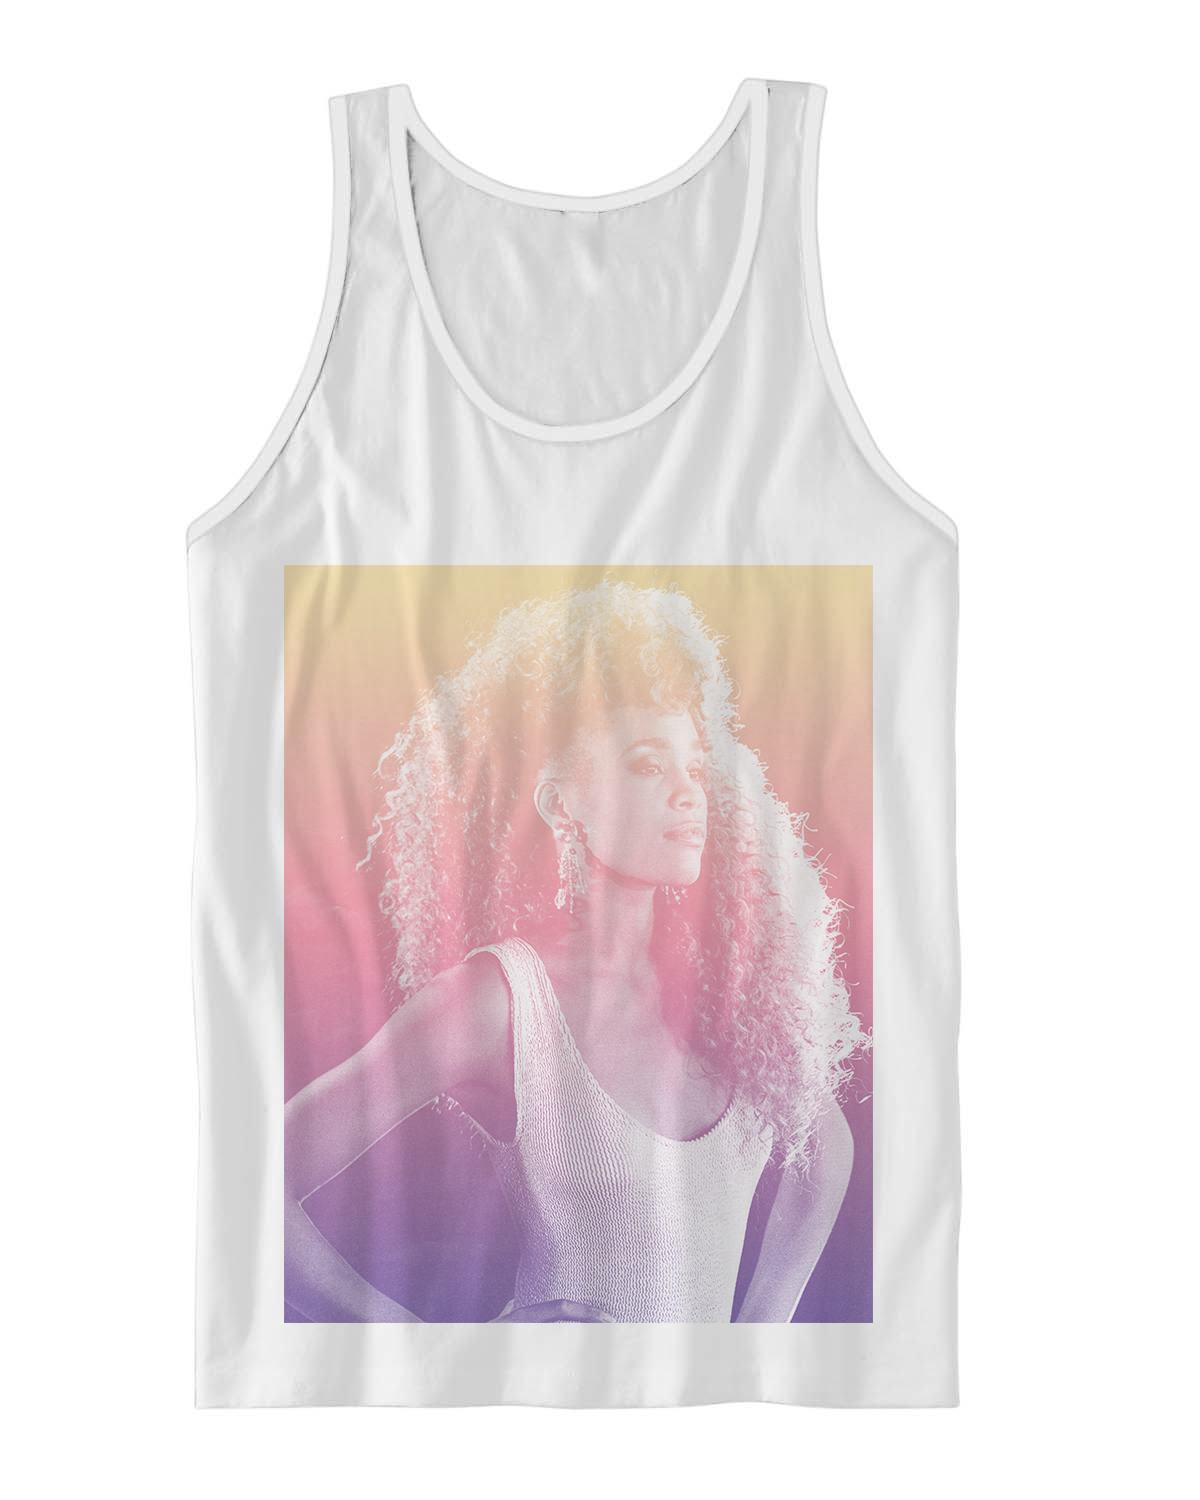 Young whitney houston tank top classic divas shirts for Cheap t shirt printing houston